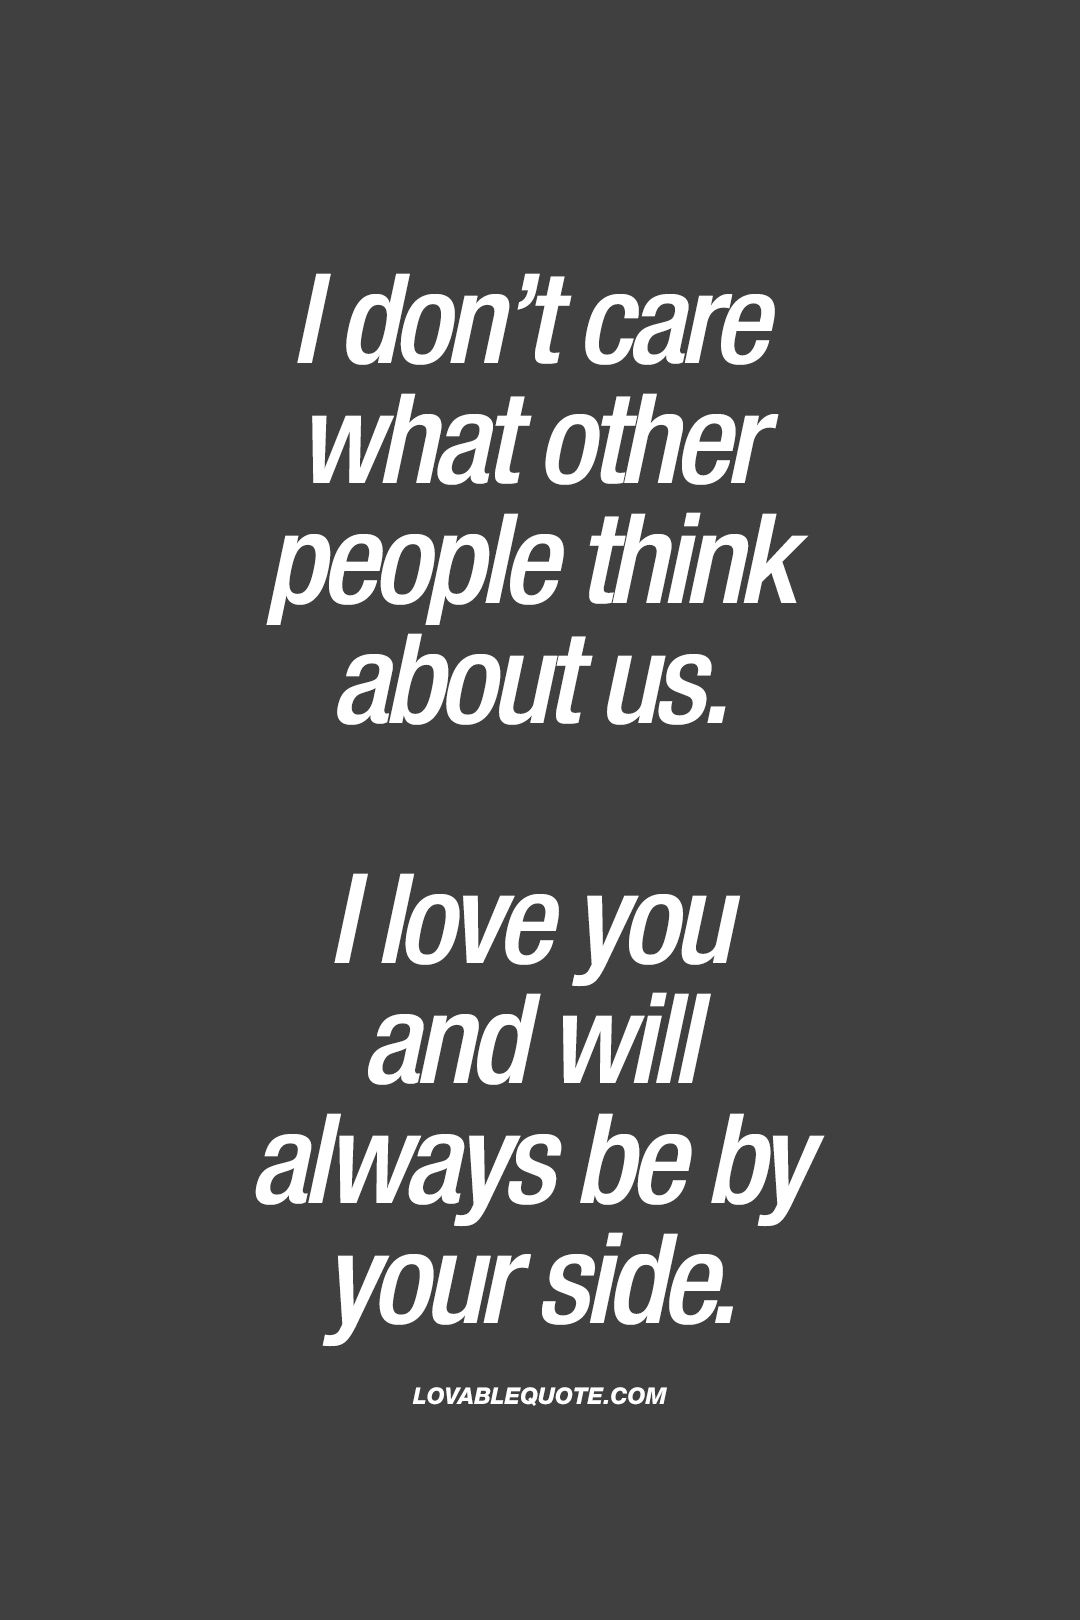 Quotes About Us I Don't Care What Other People Think About Usi Love You And Will